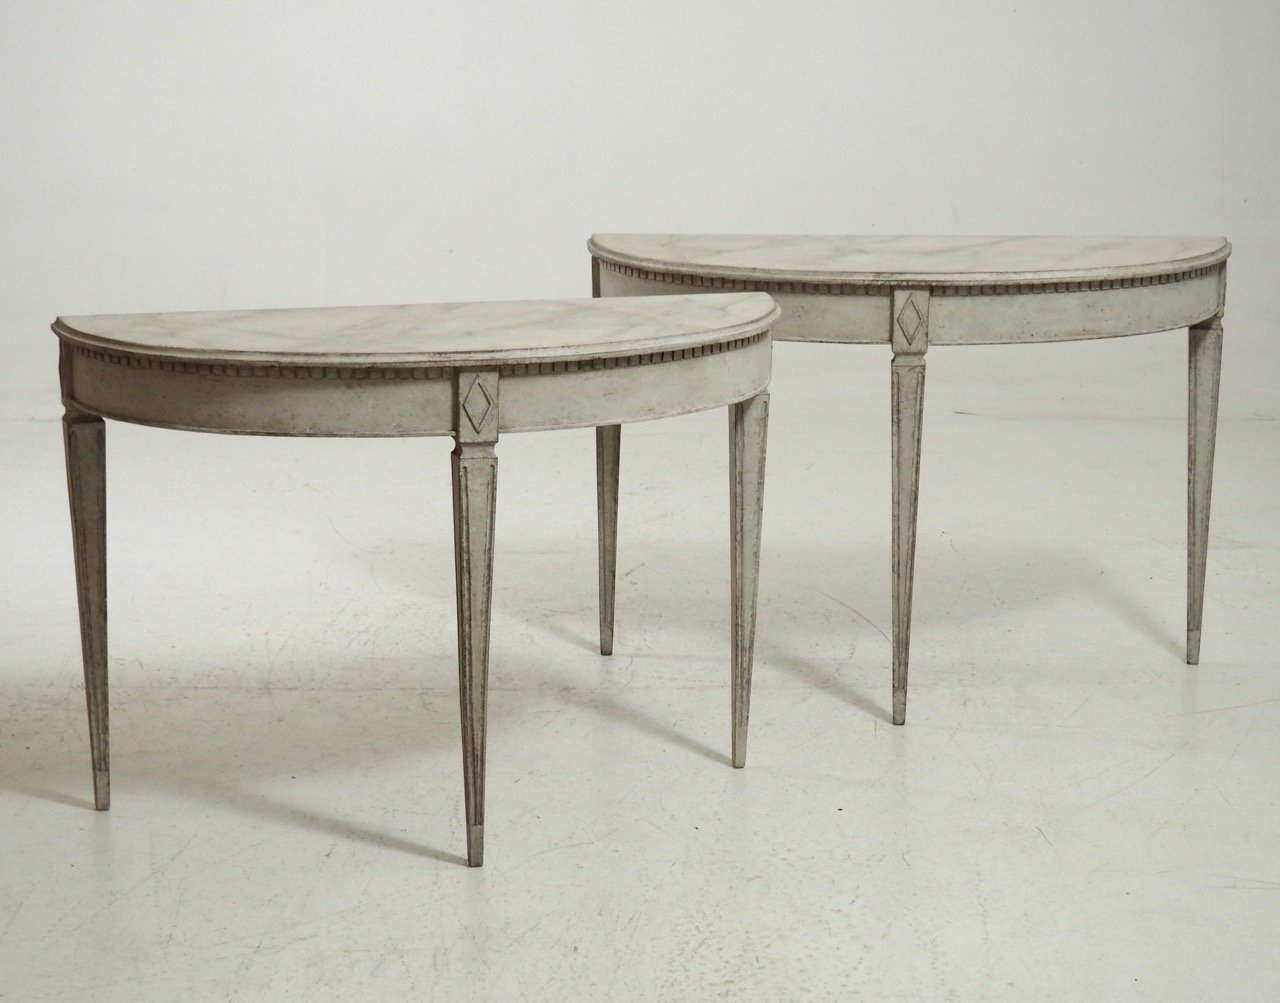 19th century gustavian demi lune tables set of 2 for sale